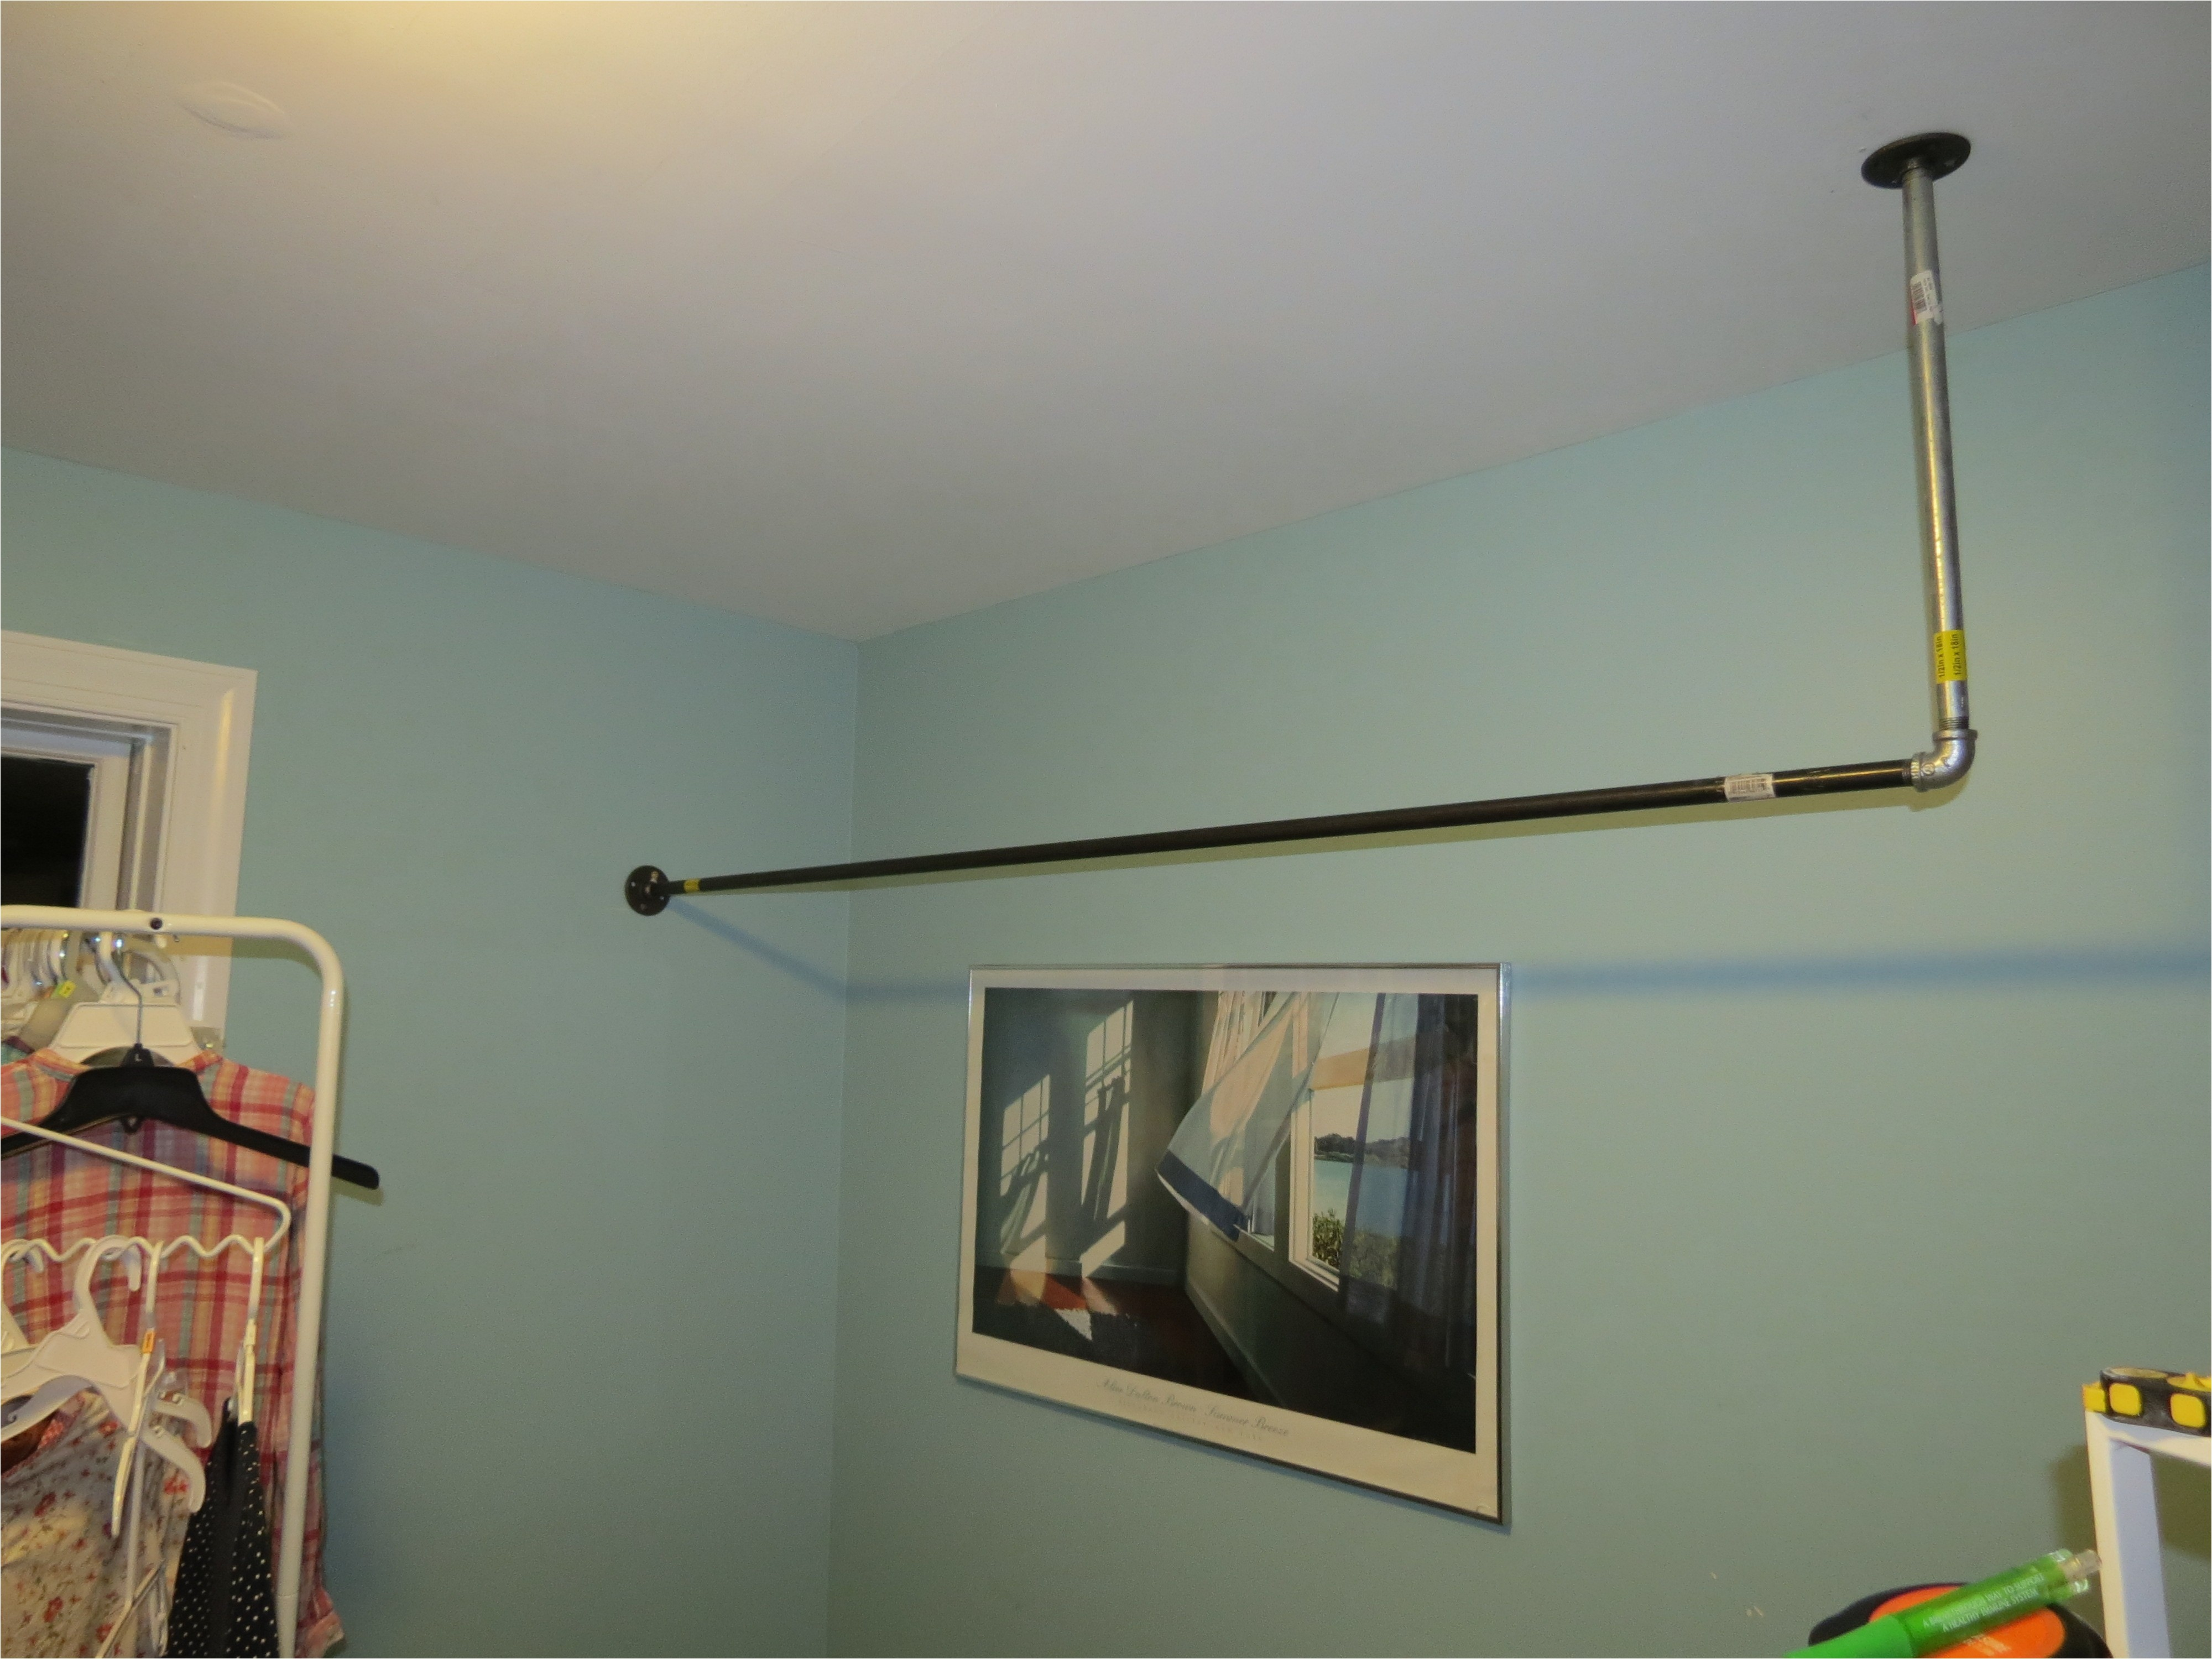 hanging closet rod from sloped ceiling